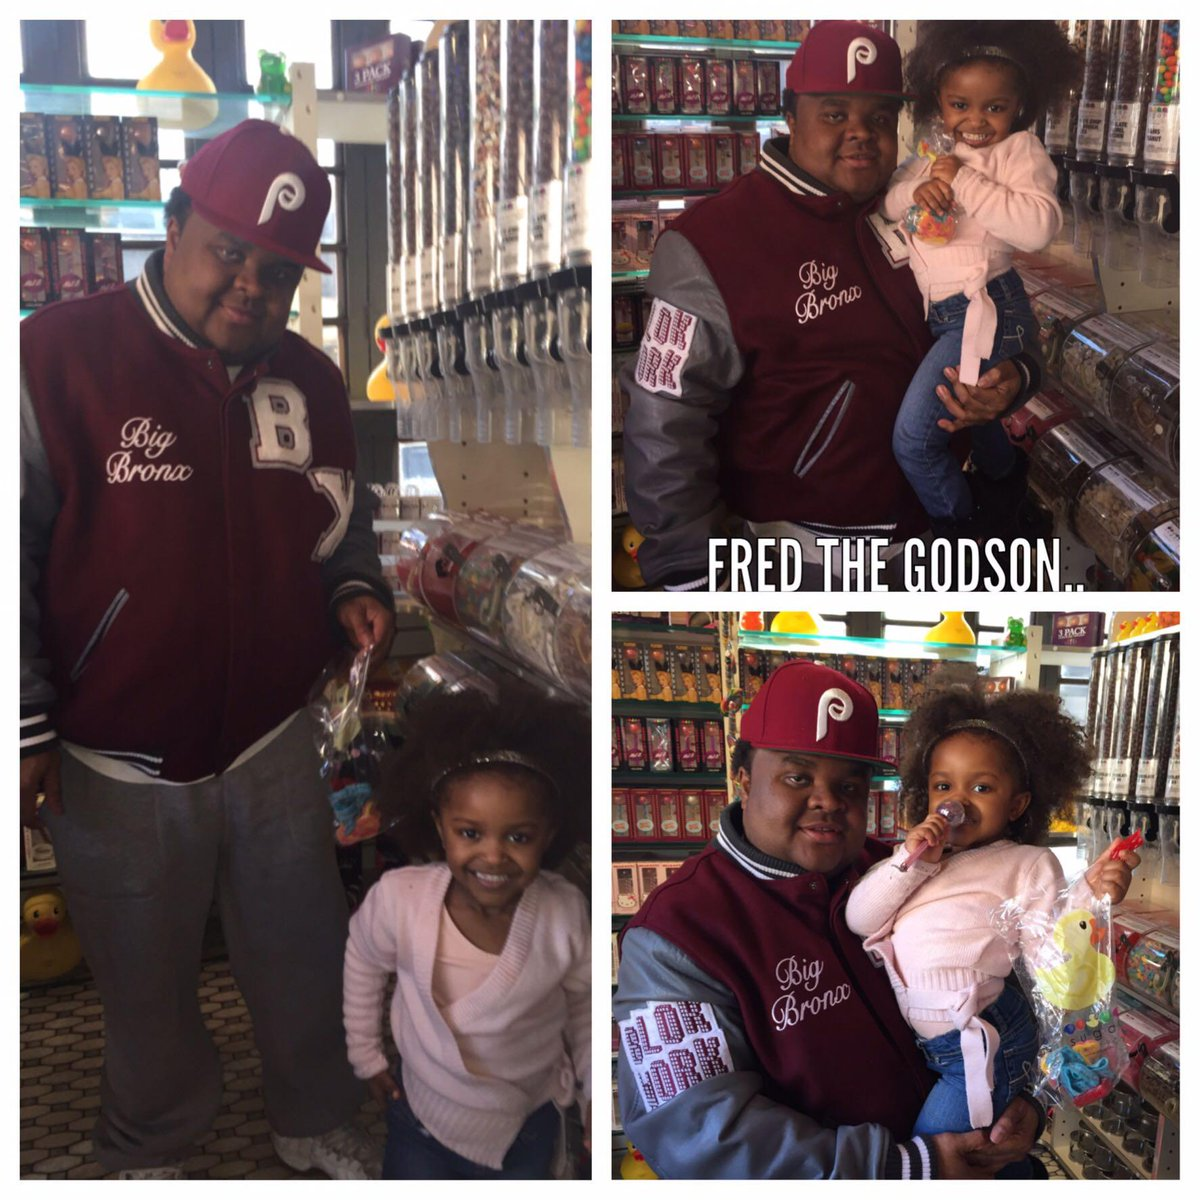 SUGAR FACTORY On Twitter Fred The Godson SF NYC Celebrating His Daughters Birthday She Loves Her New Hello Kitty Couture Pop